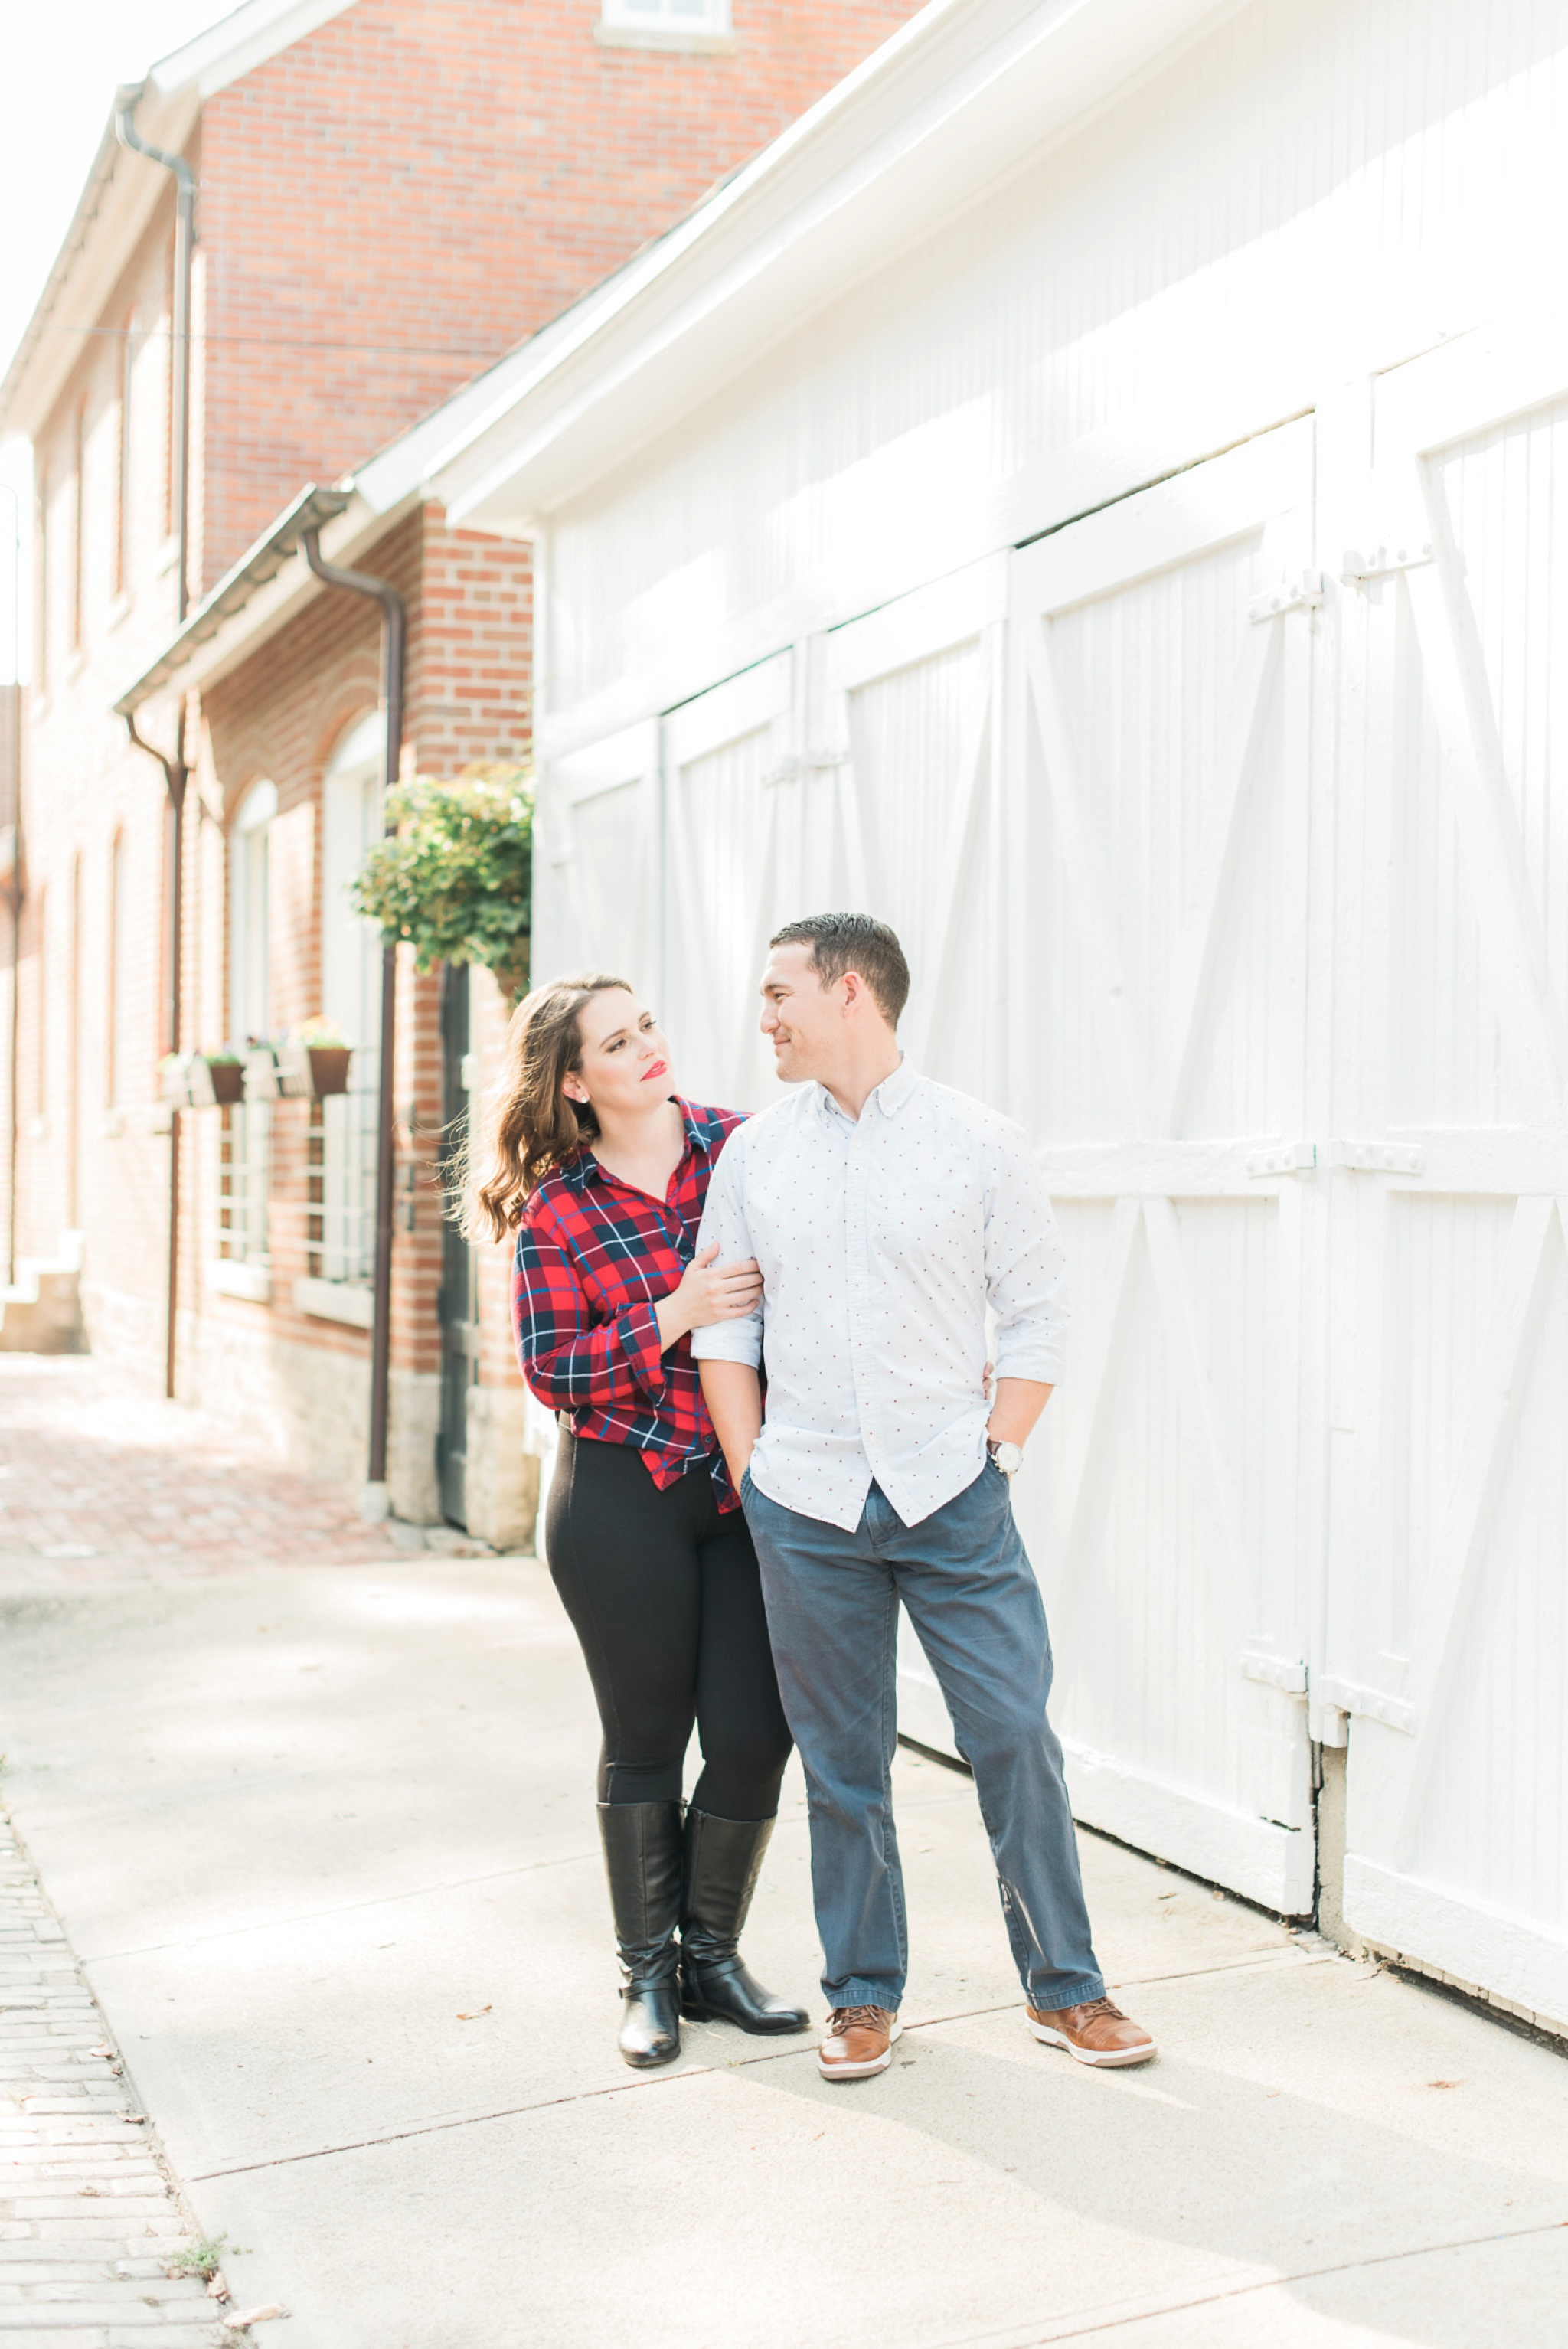 downtown-columbus-german-village-engagement-session-17.jpg